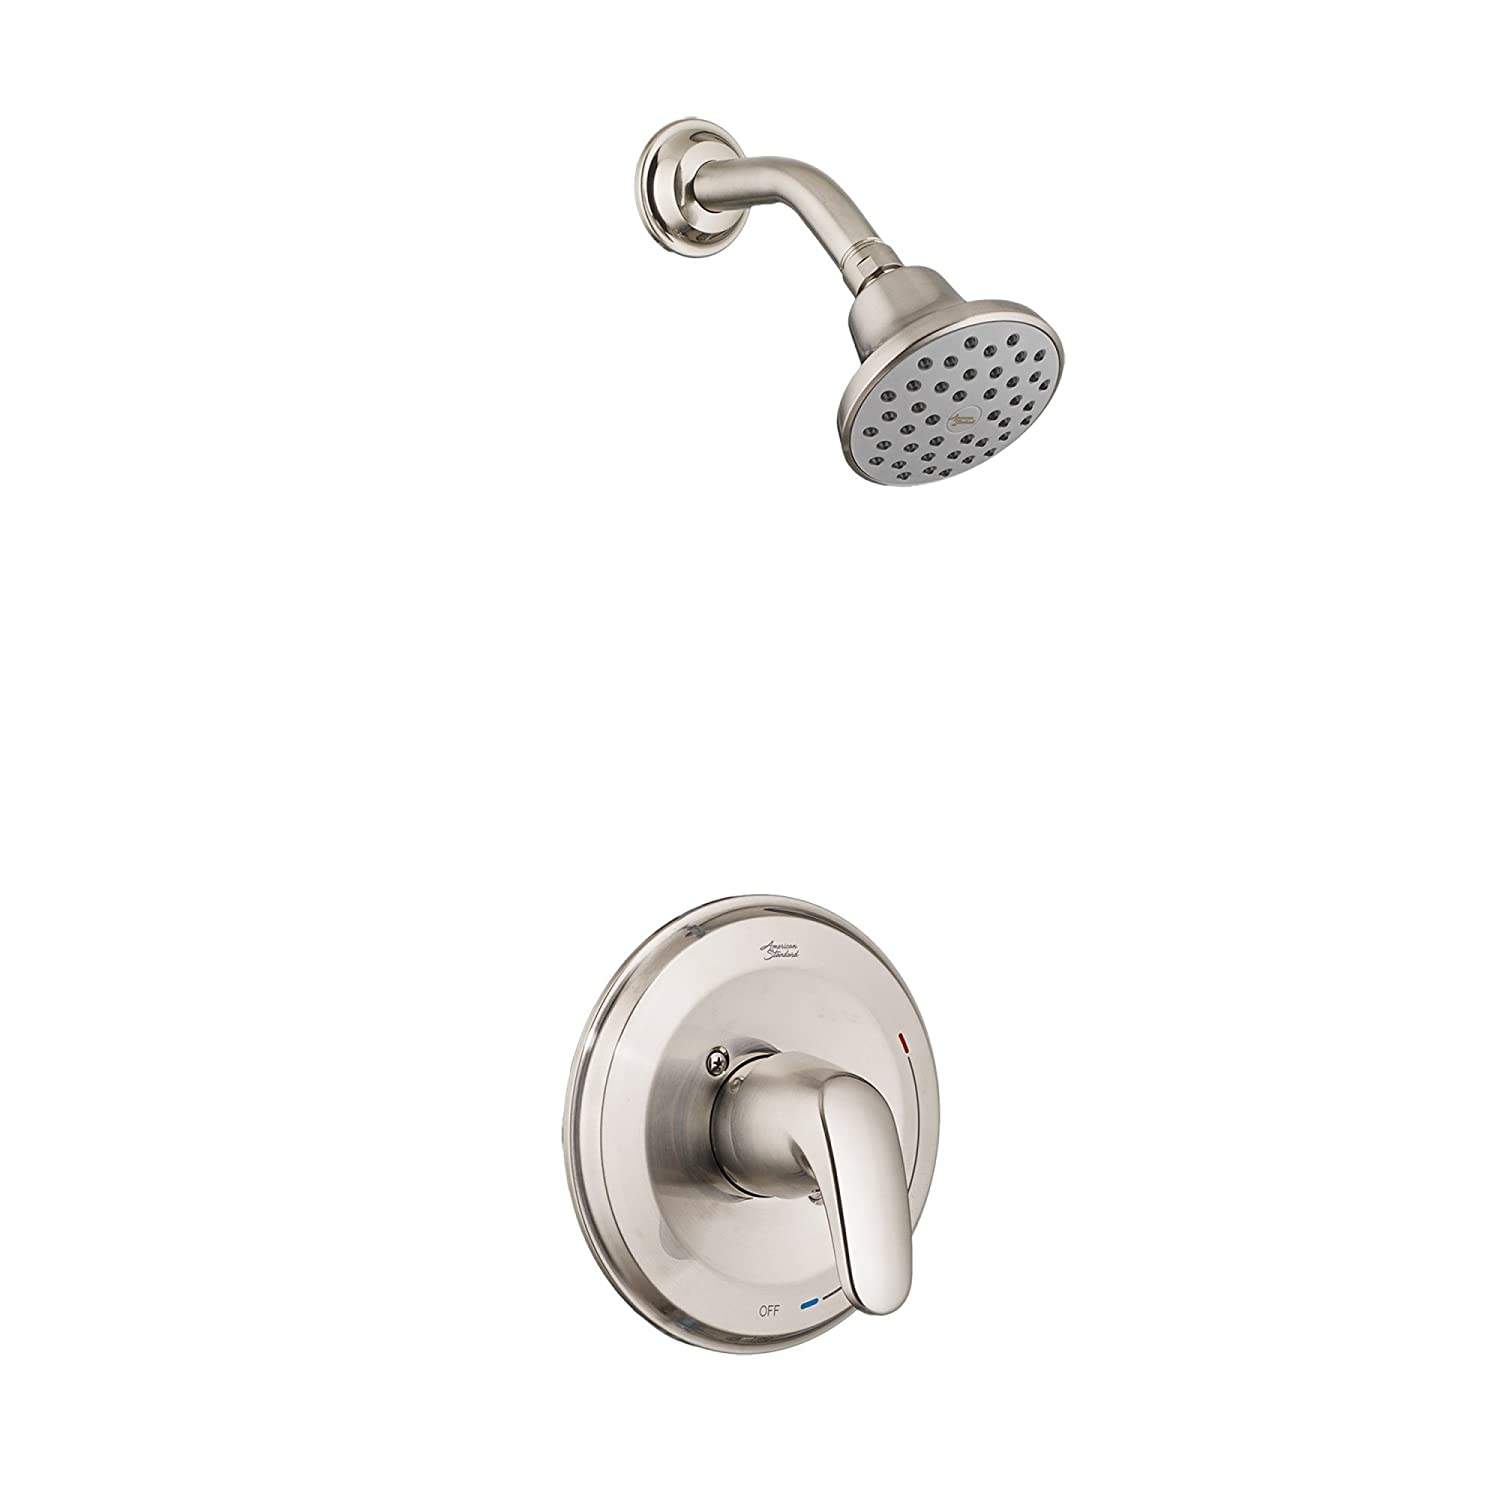 A/S T075.507.295 COLONY PRO SHOWER ONLY TRIM KIT, INCLUDES SHOWER HEAD, BRUSHED NICKEL (WITHOUT VALVE BODY) MC370730